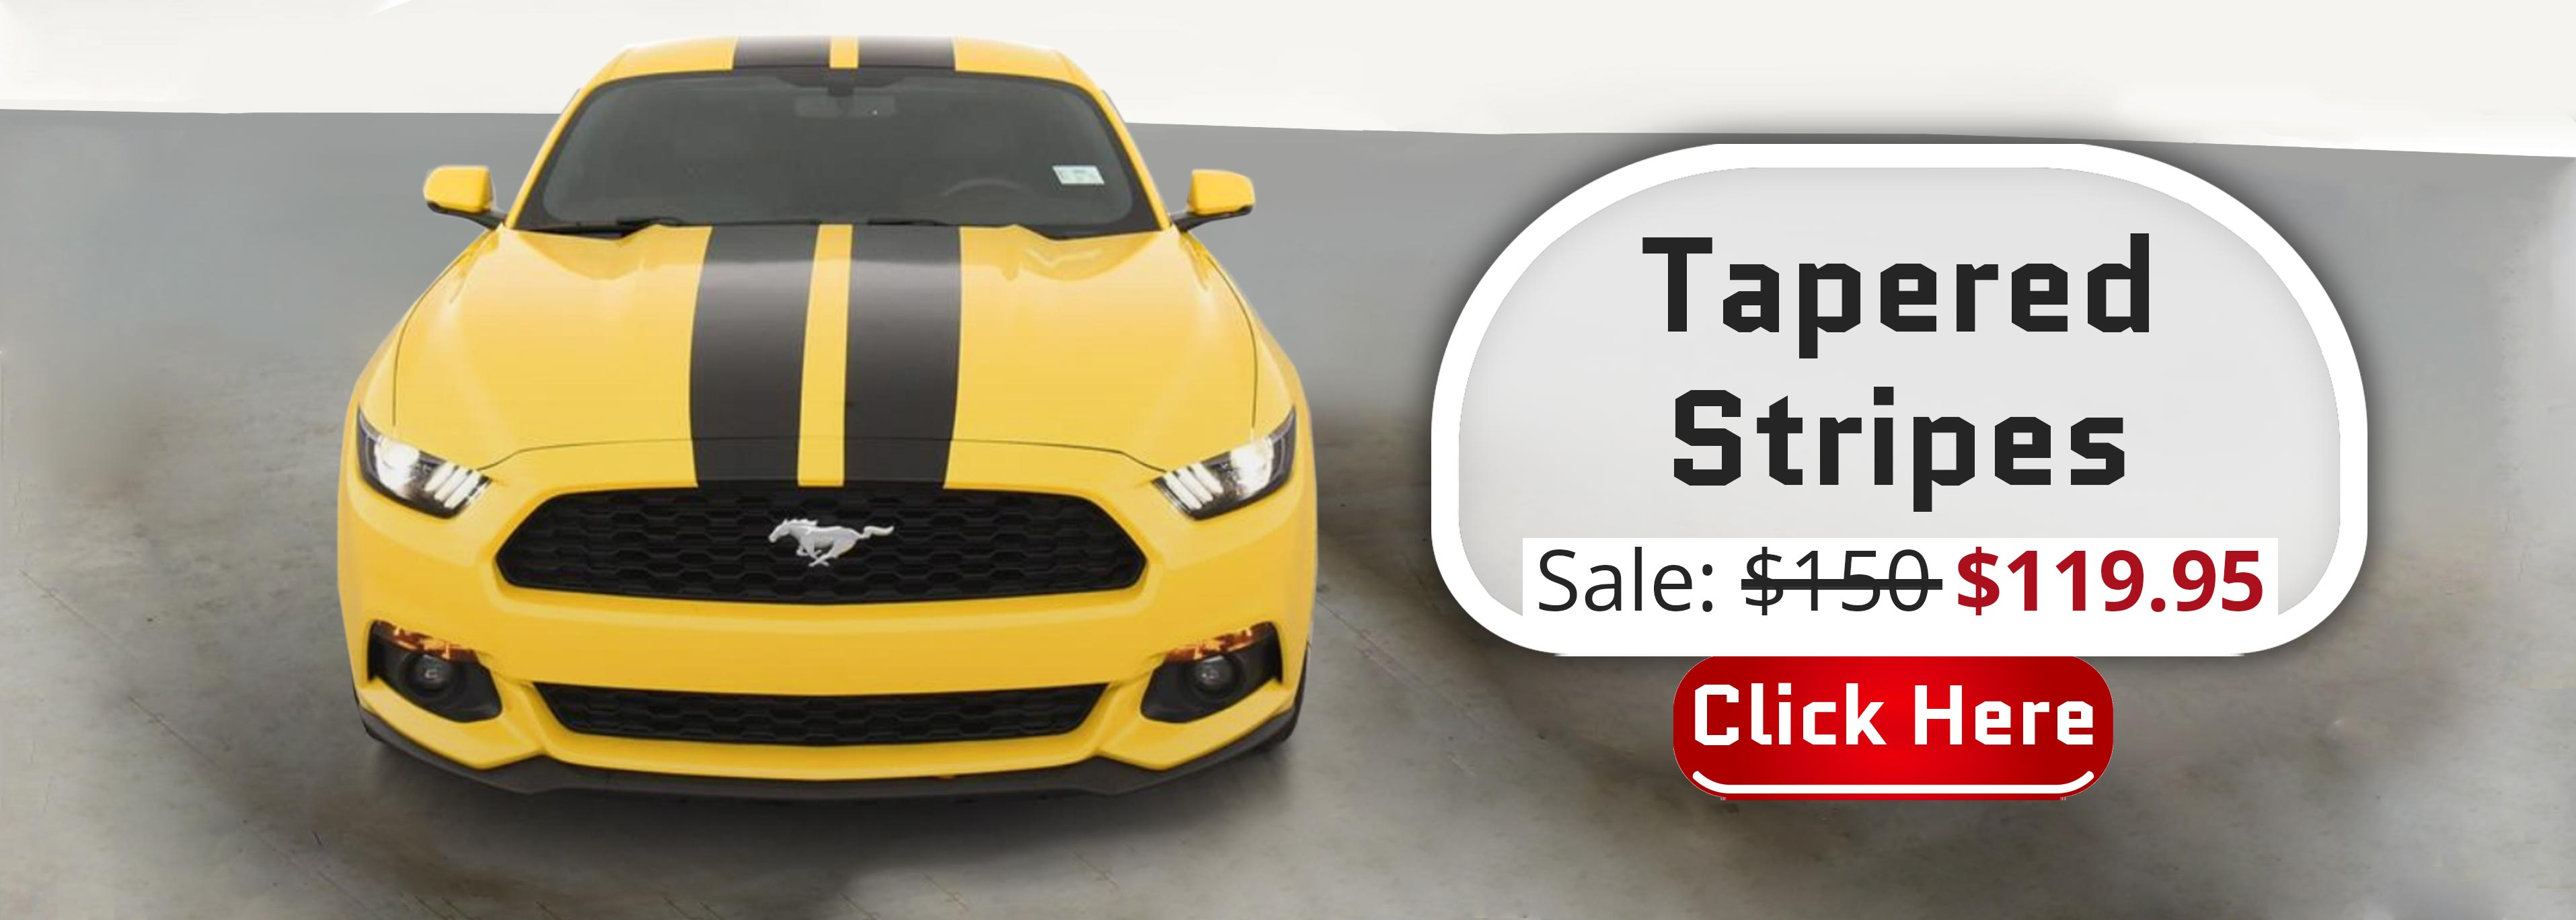 Tapered Slim Racing Stripes Ford Mustang s550